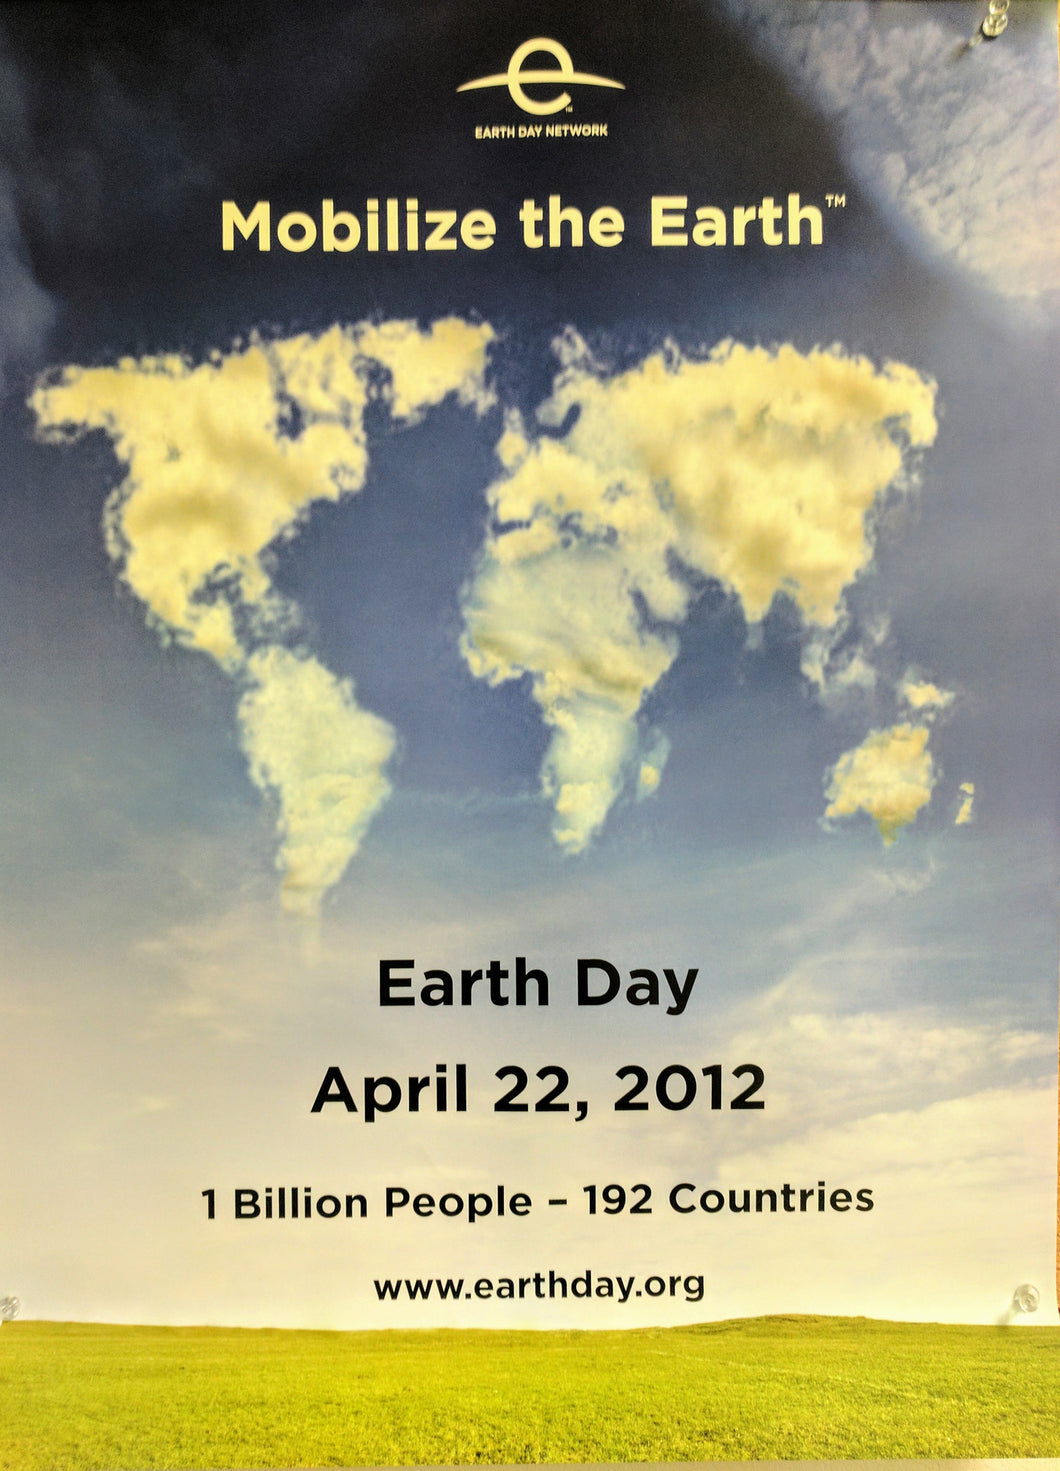 Earth Day 2012 Mobilize the Earth poster